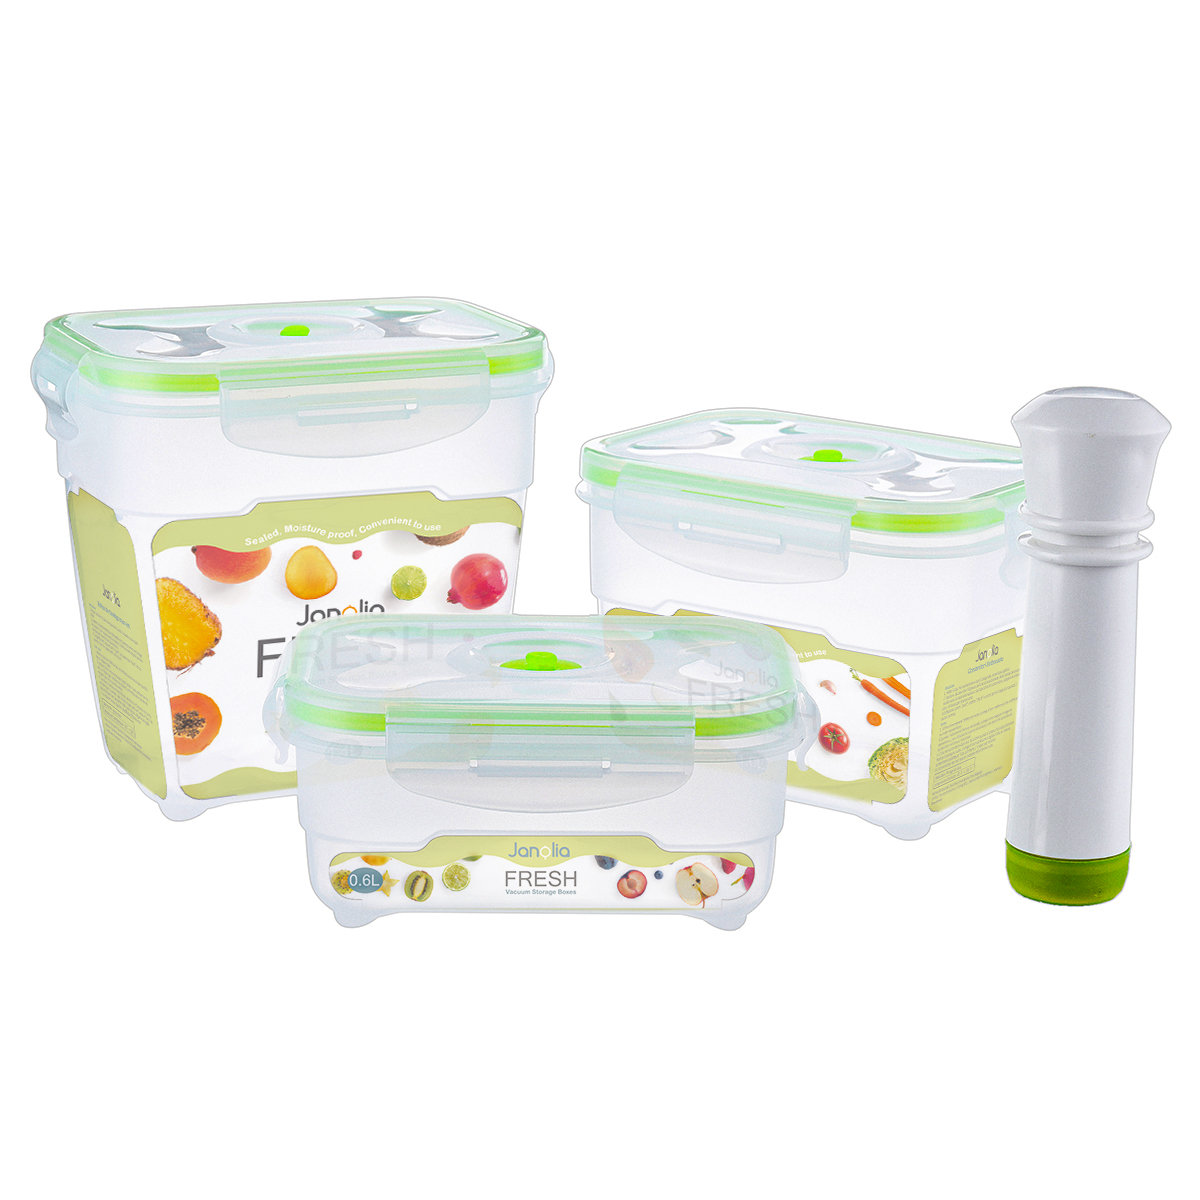 Plastic Vacuum Storage Box Lunch Box Microwave Dishwasher Safe Food  Container Kitchen Storage Container